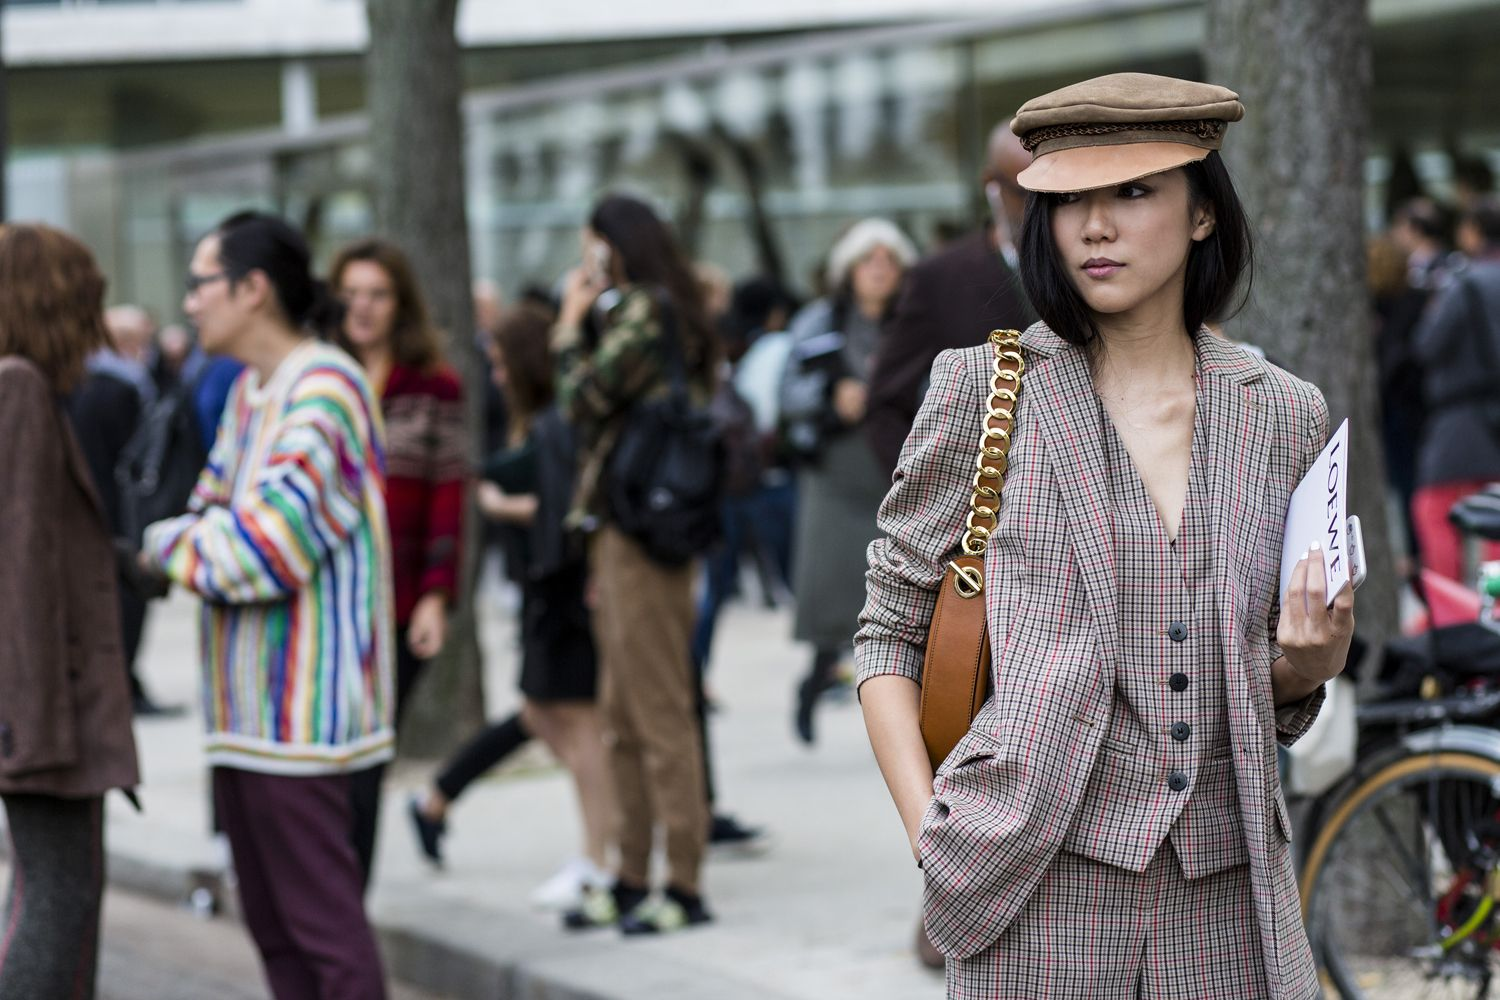 5 Minutes With... Street-Style Star, Yoyo Cao